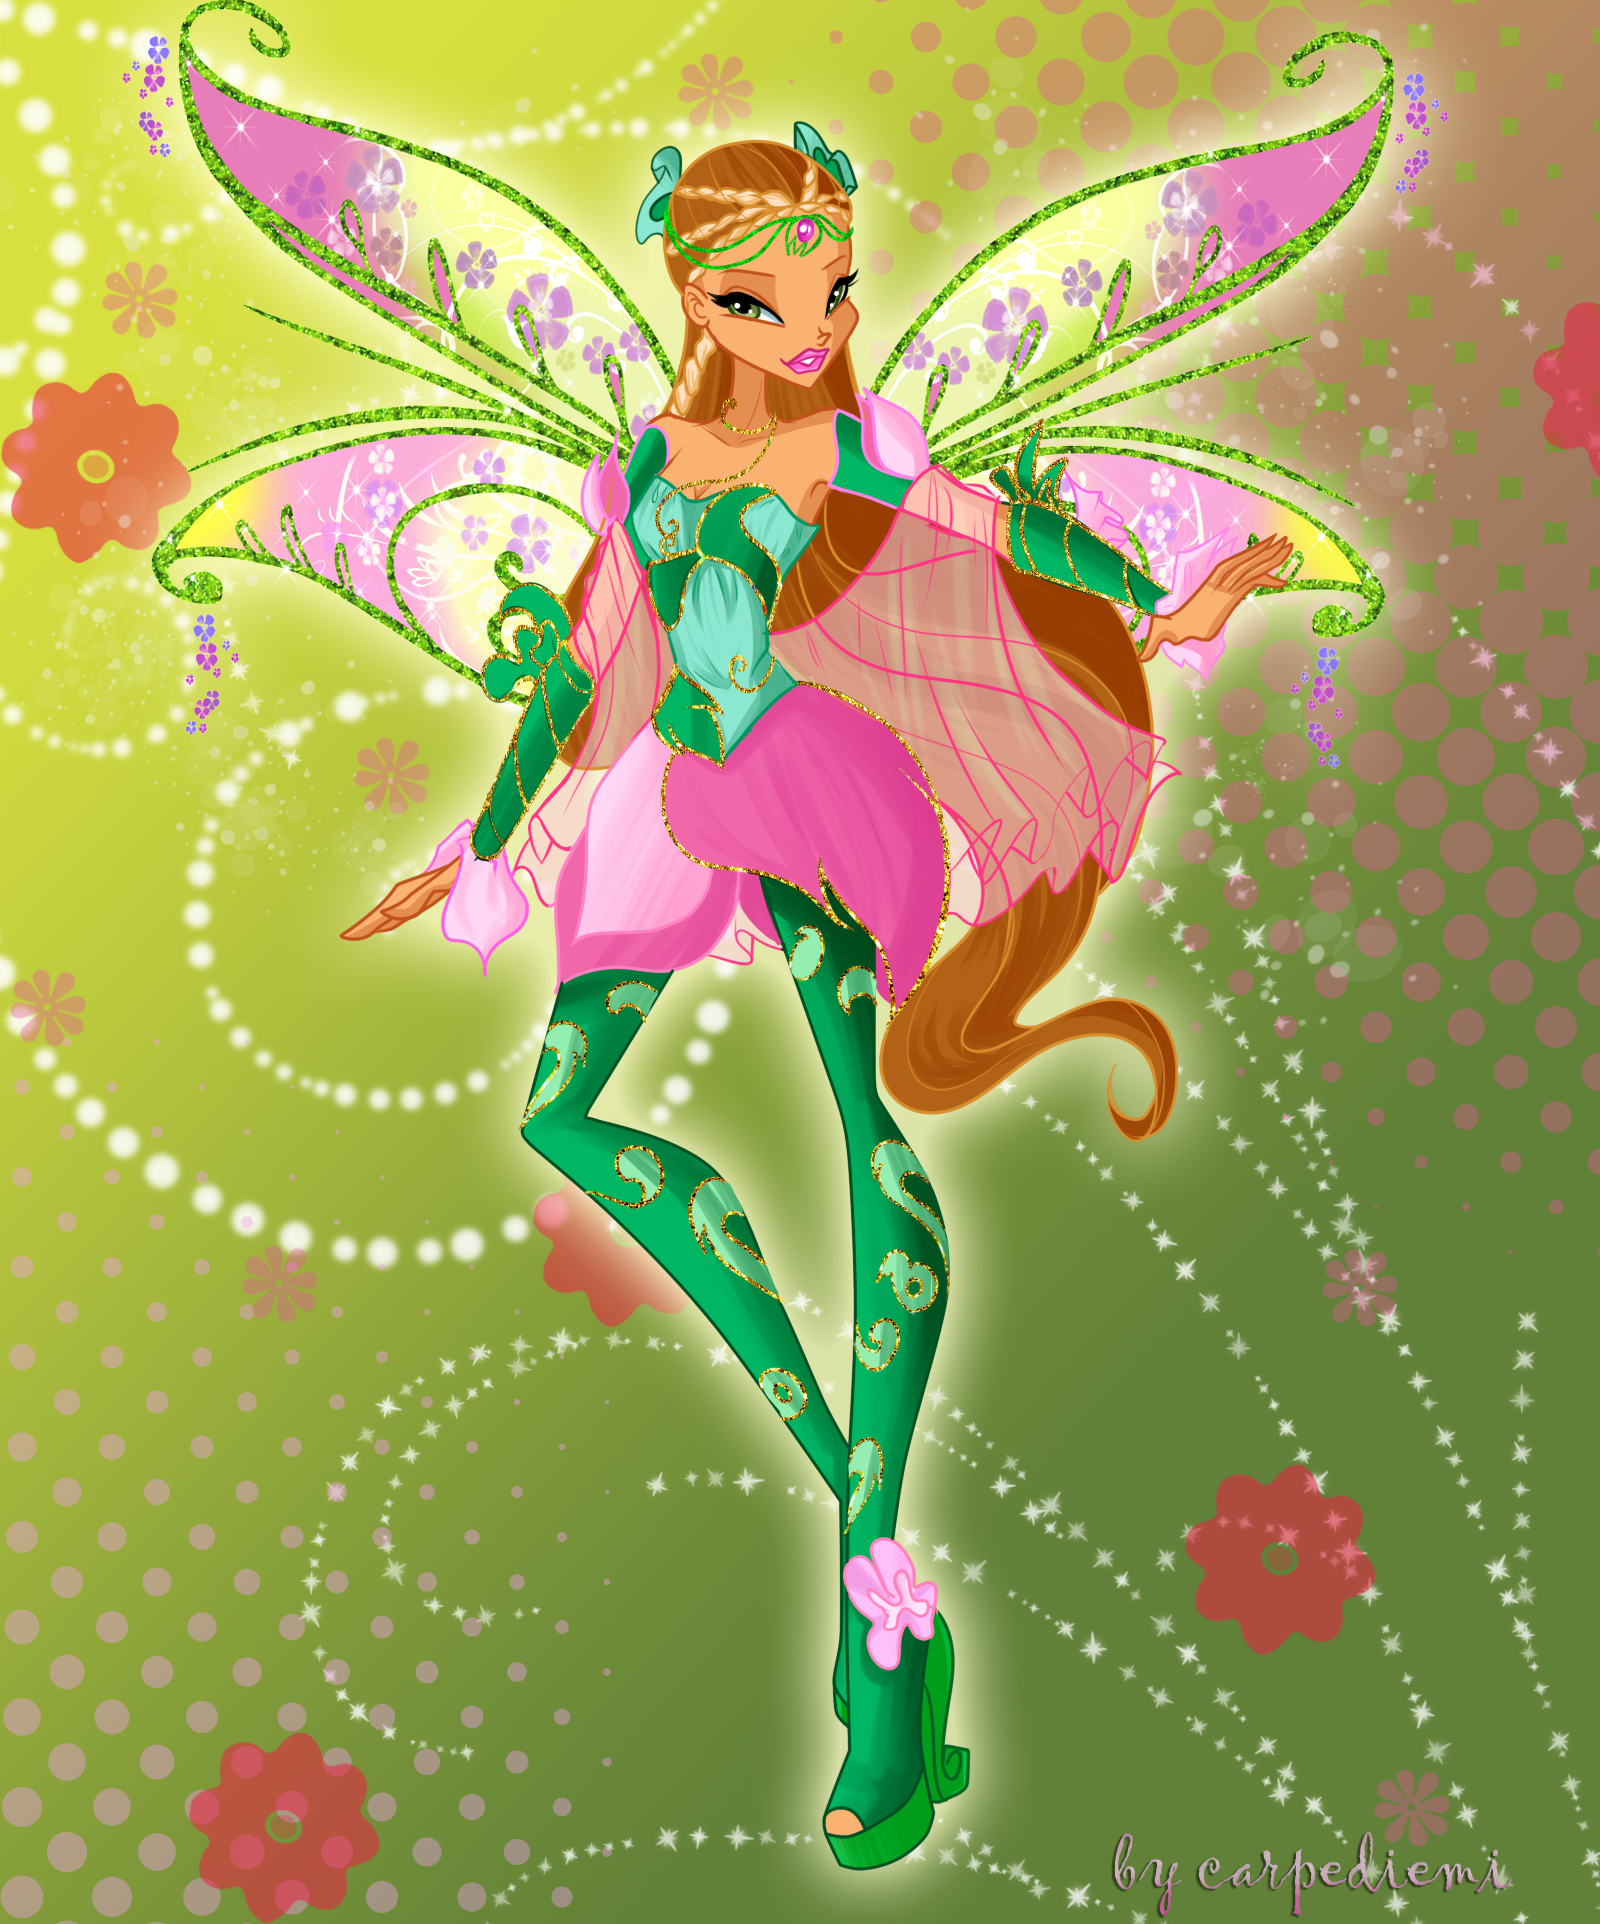 winx club season 6 transformation Roxy,bloom, Flora and musa mermaidix